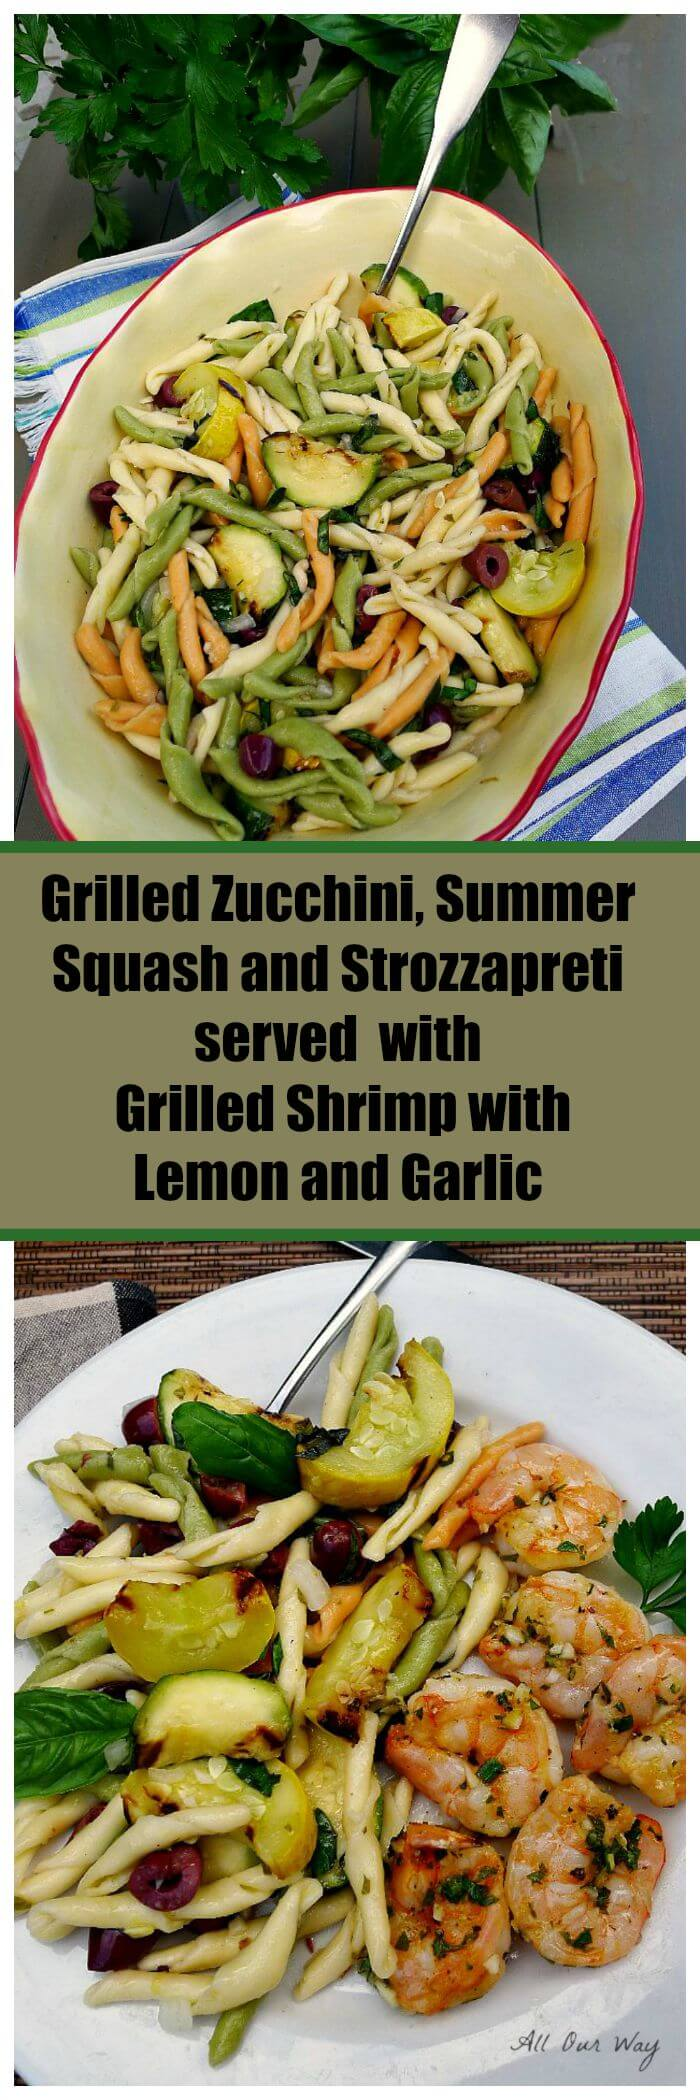 Grilled zucchini summer squash with Strozzapreti served with grilled shrimp with lemon and garlic @allourway.com